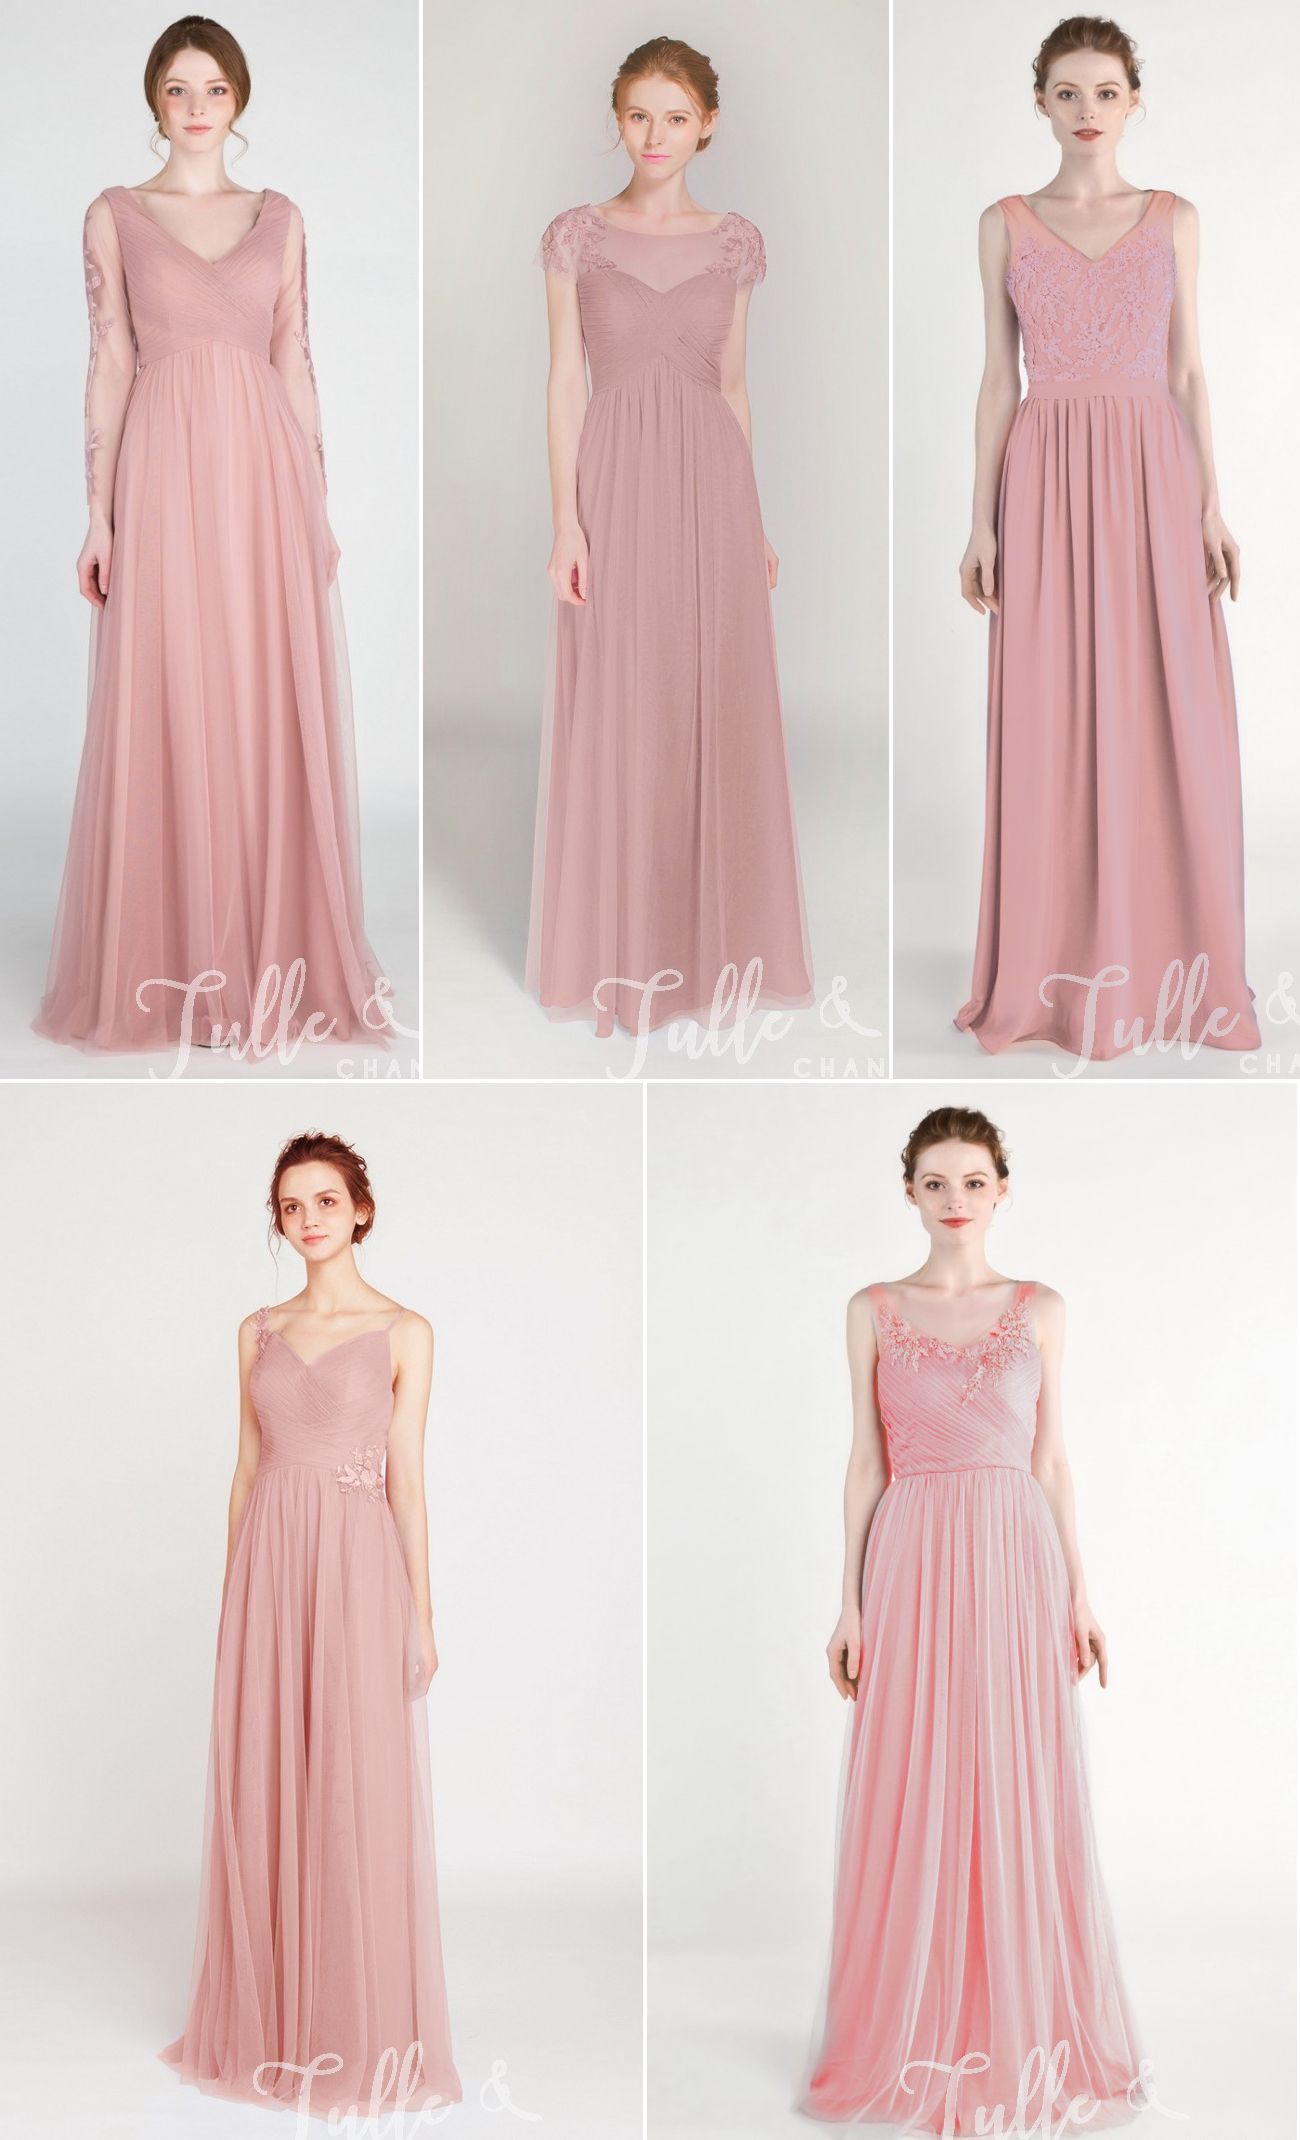 39f6e38c057 Tulle   Chantilly dusty rose illusion lace tulle bridesmaid dresses -  TBQP413